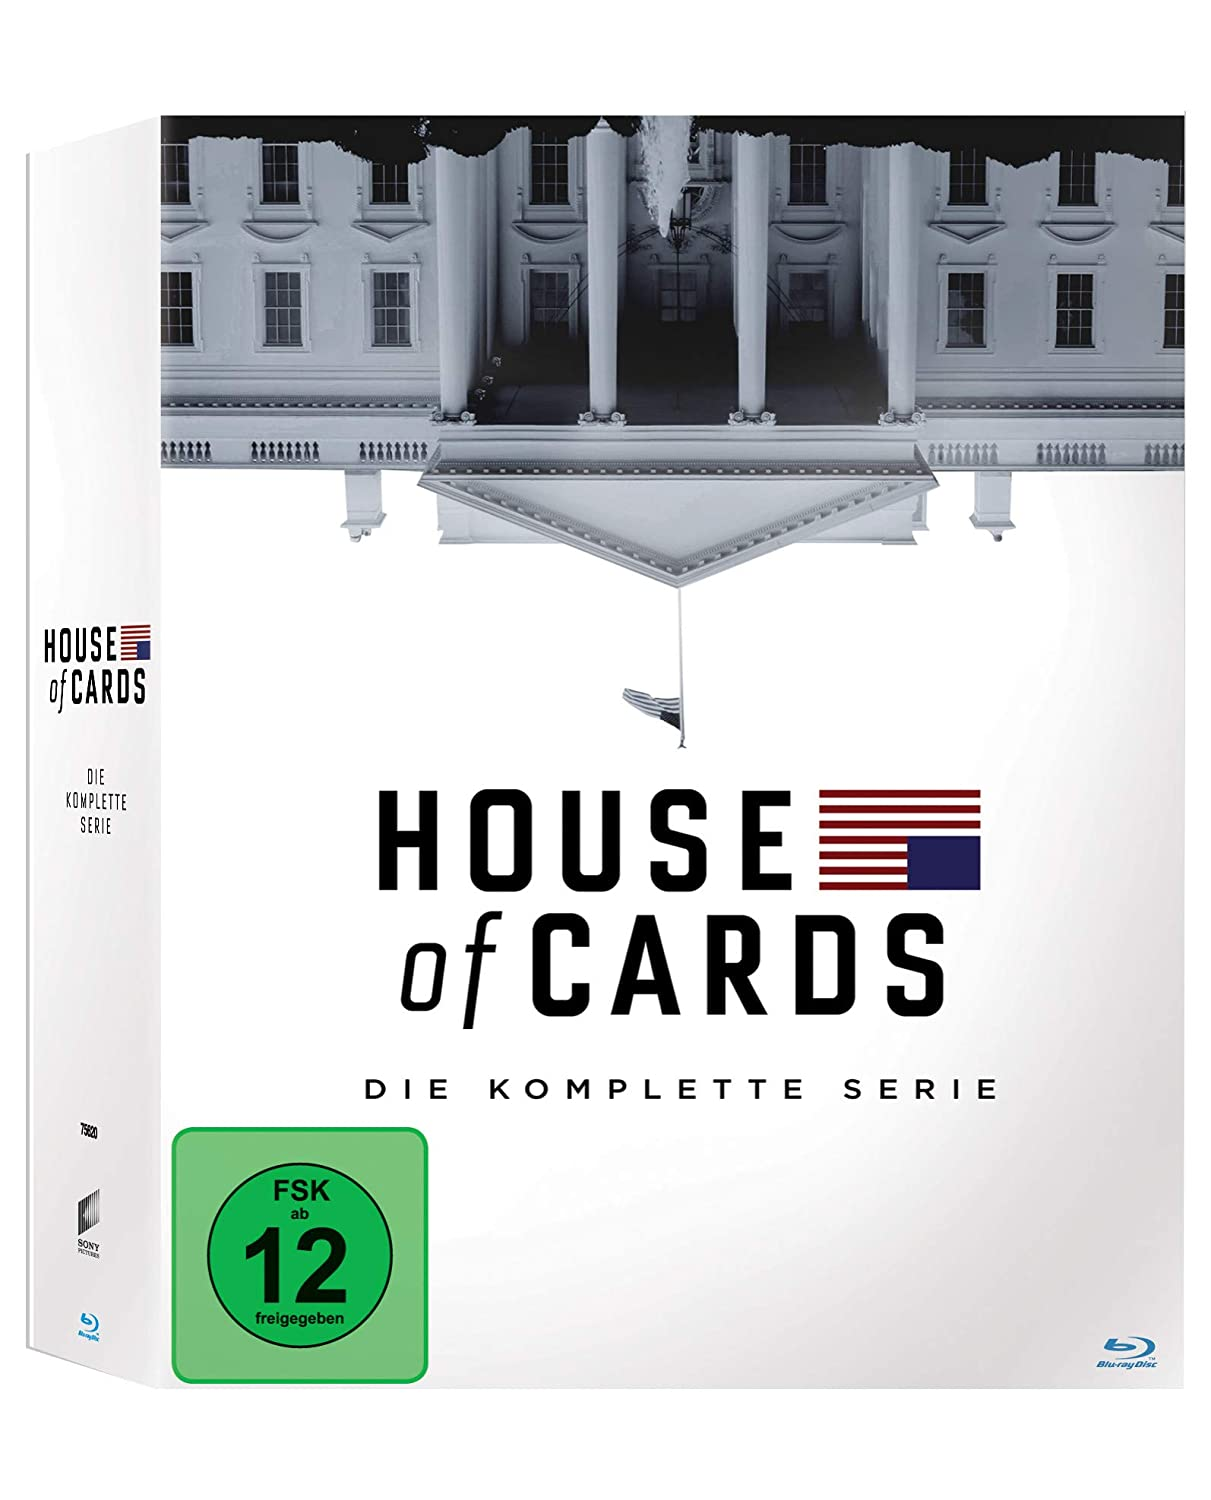 House of Cards - Die komplette Serie (Blu-ray) | jetzt 30% sparen